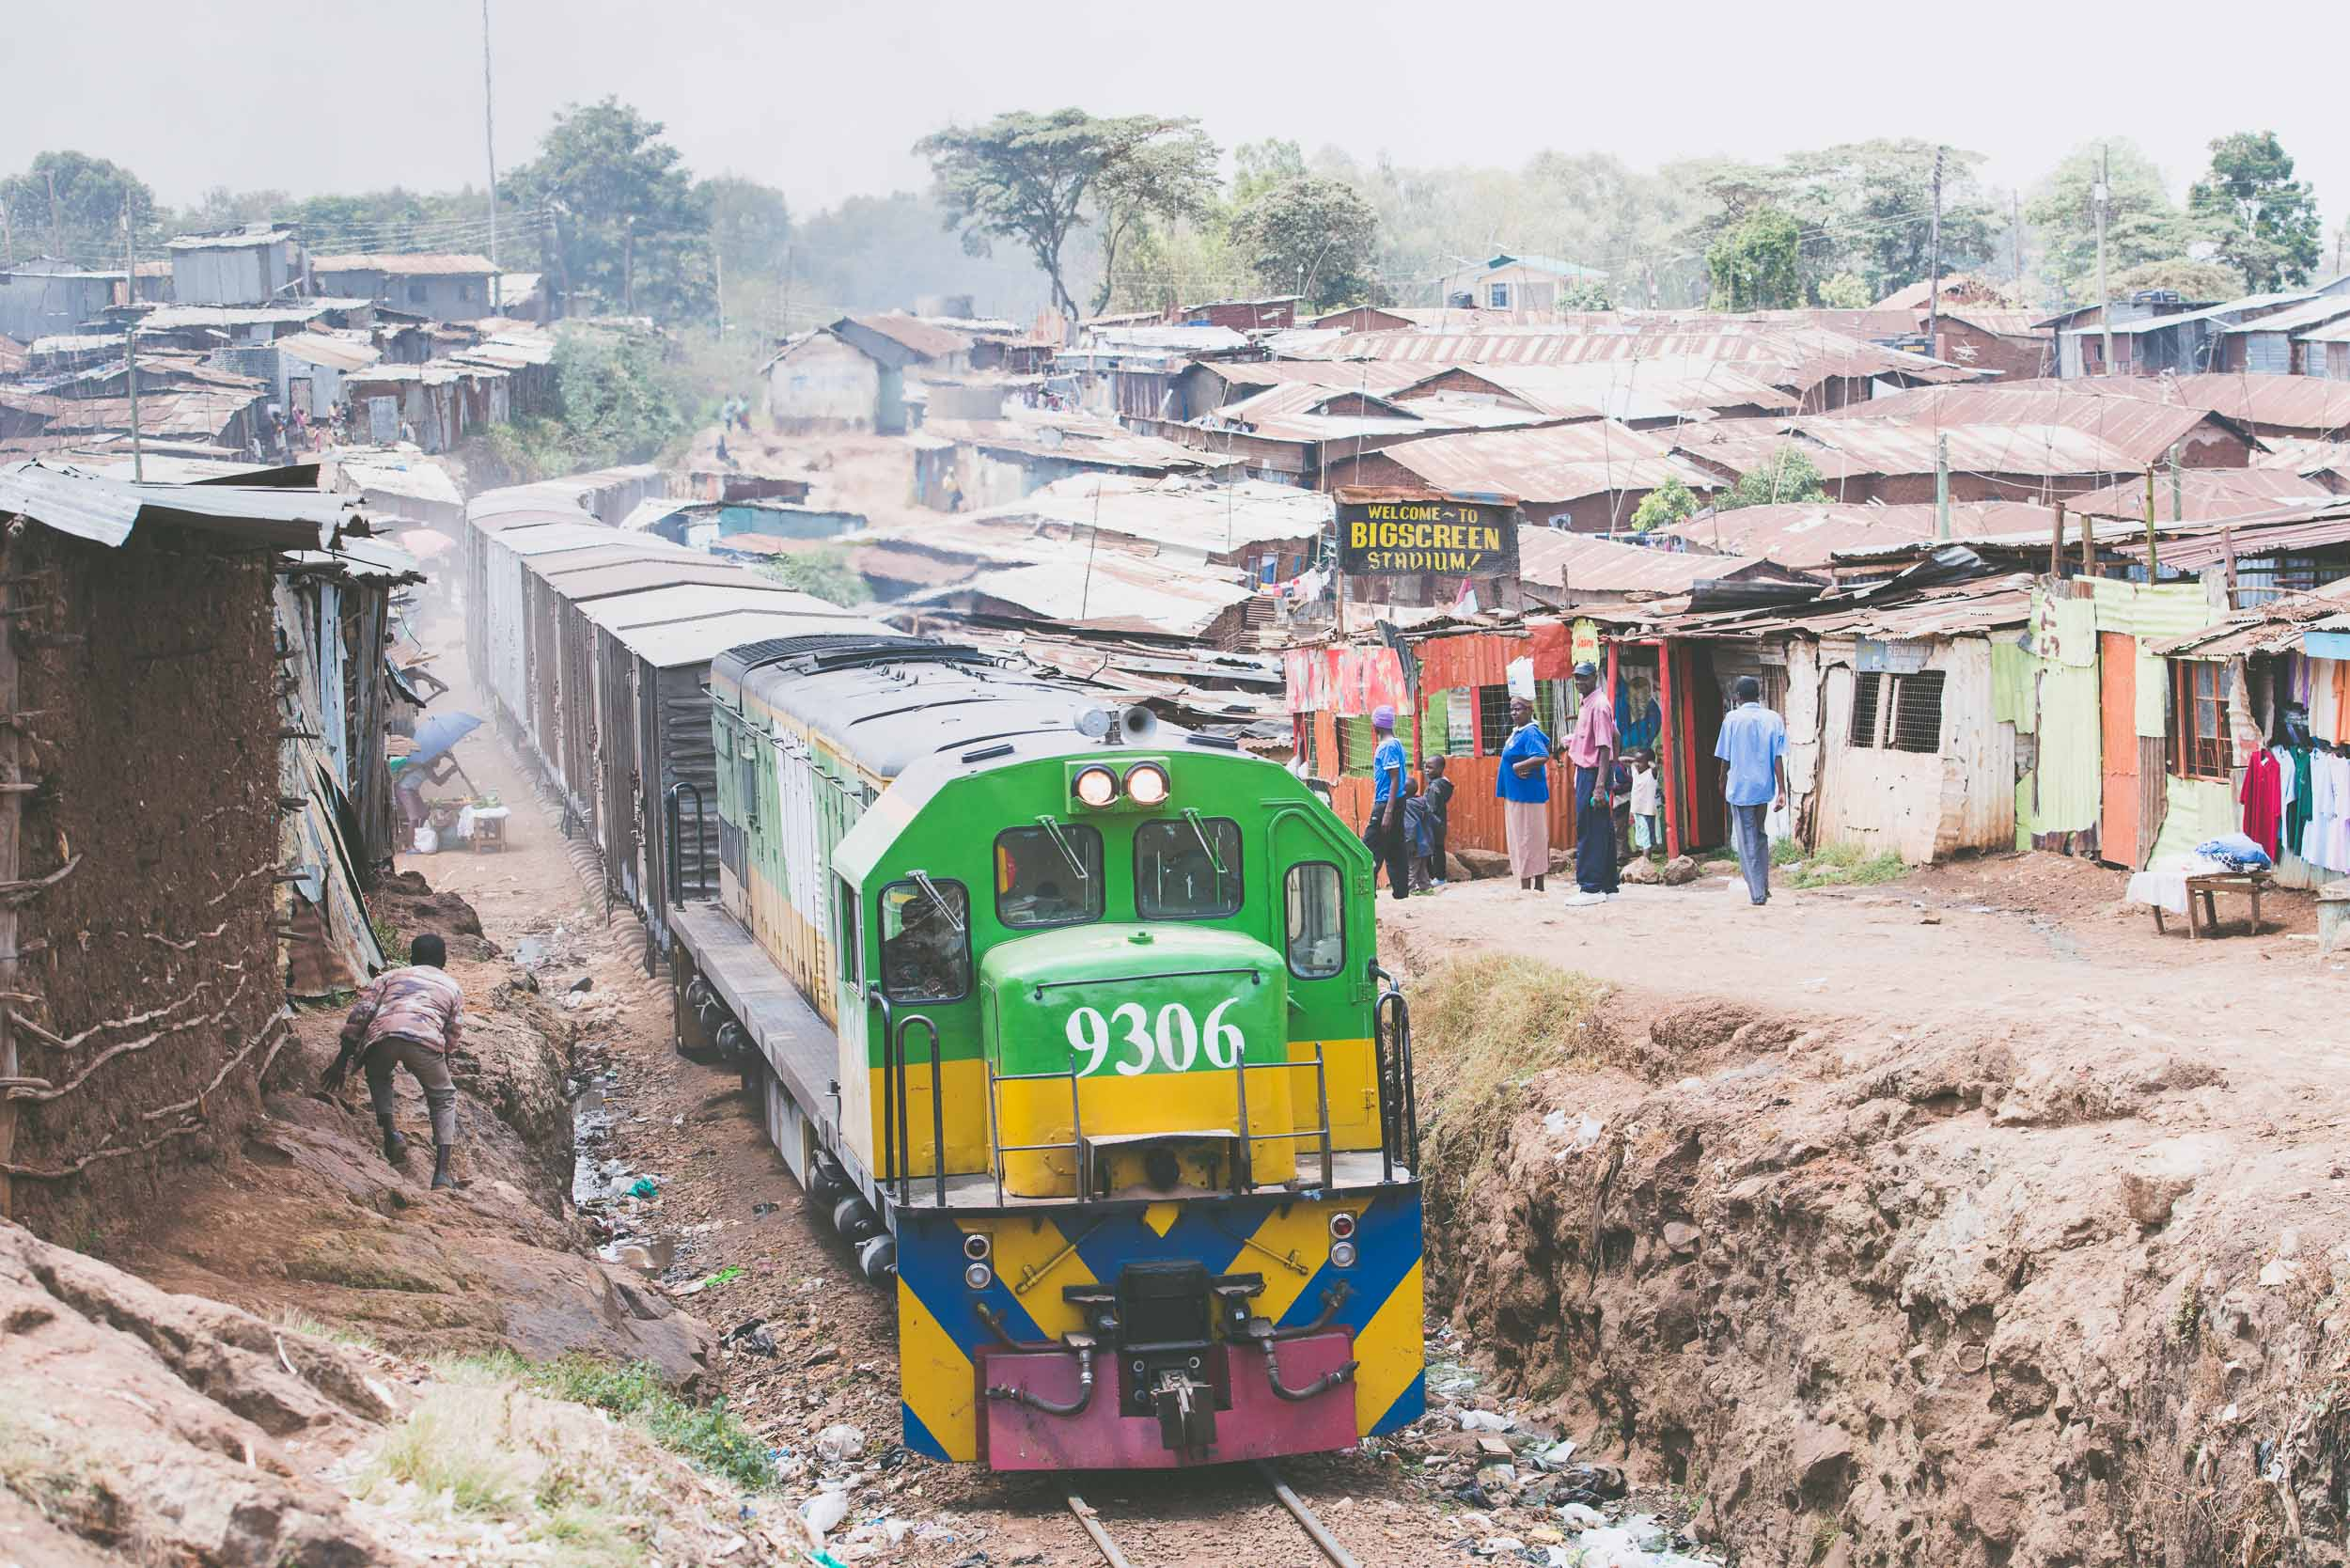 Kenya Kibera train - Travel - Photo credit Nicola Bailey.jpg